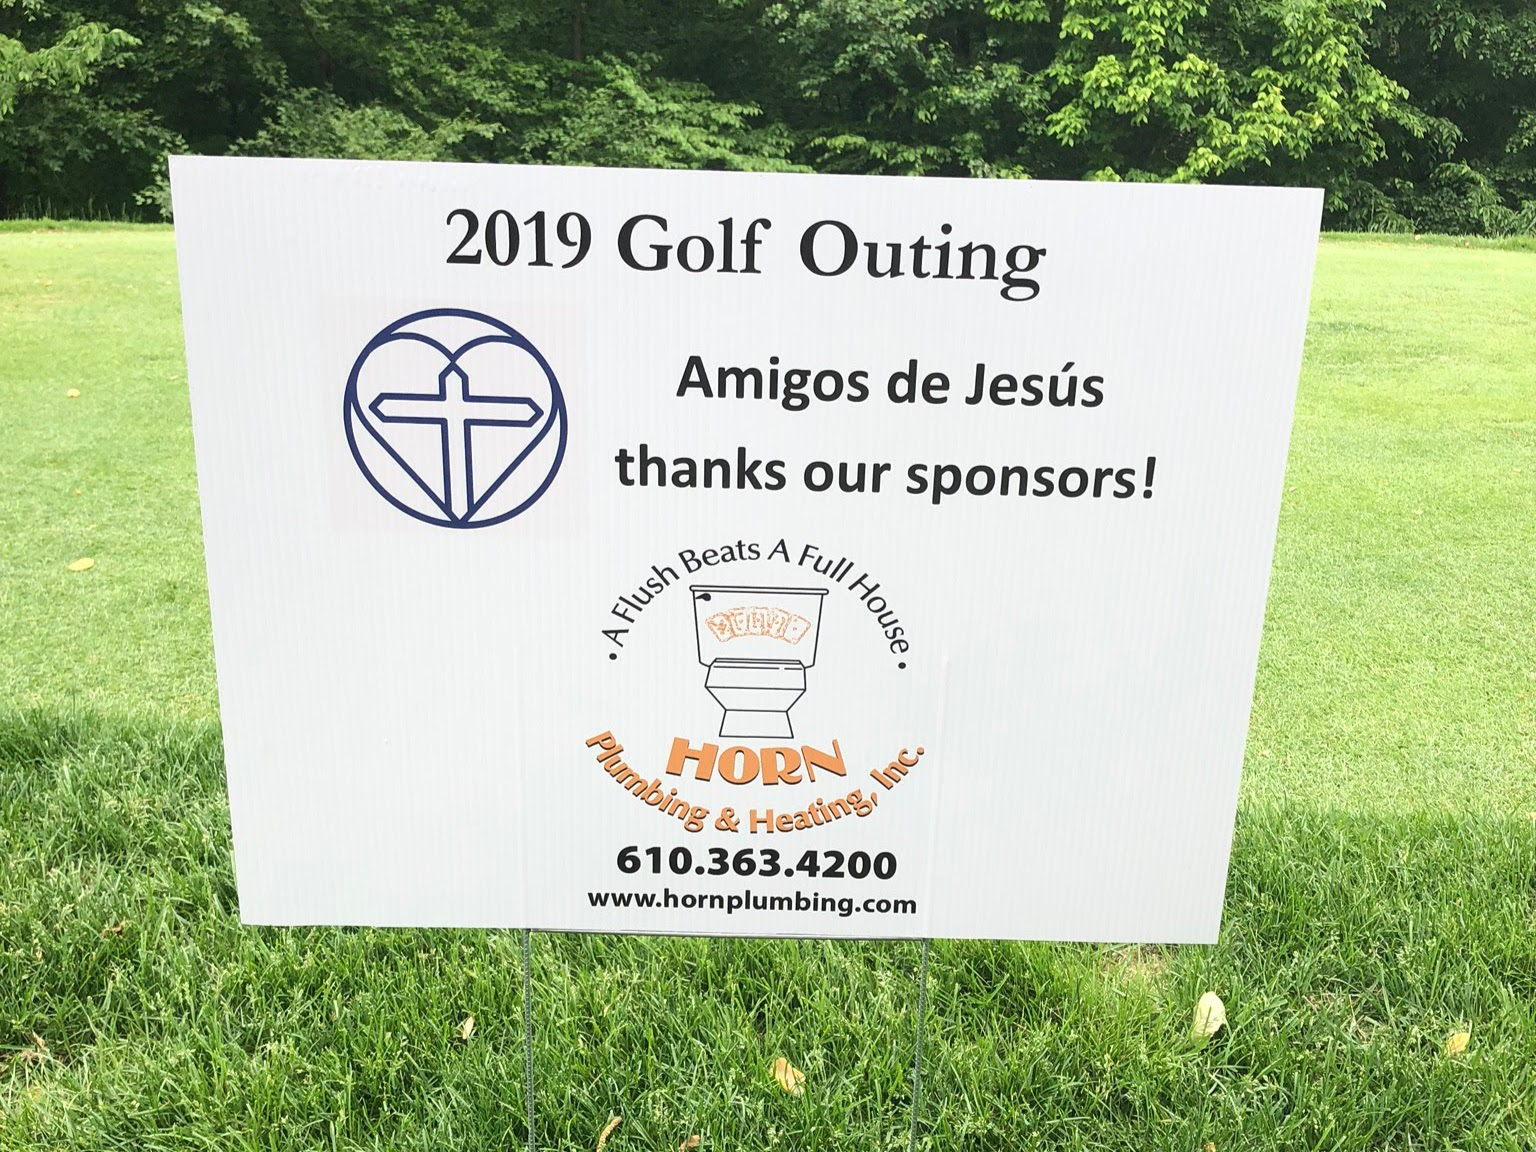 golf-outing-2019-06.jpg